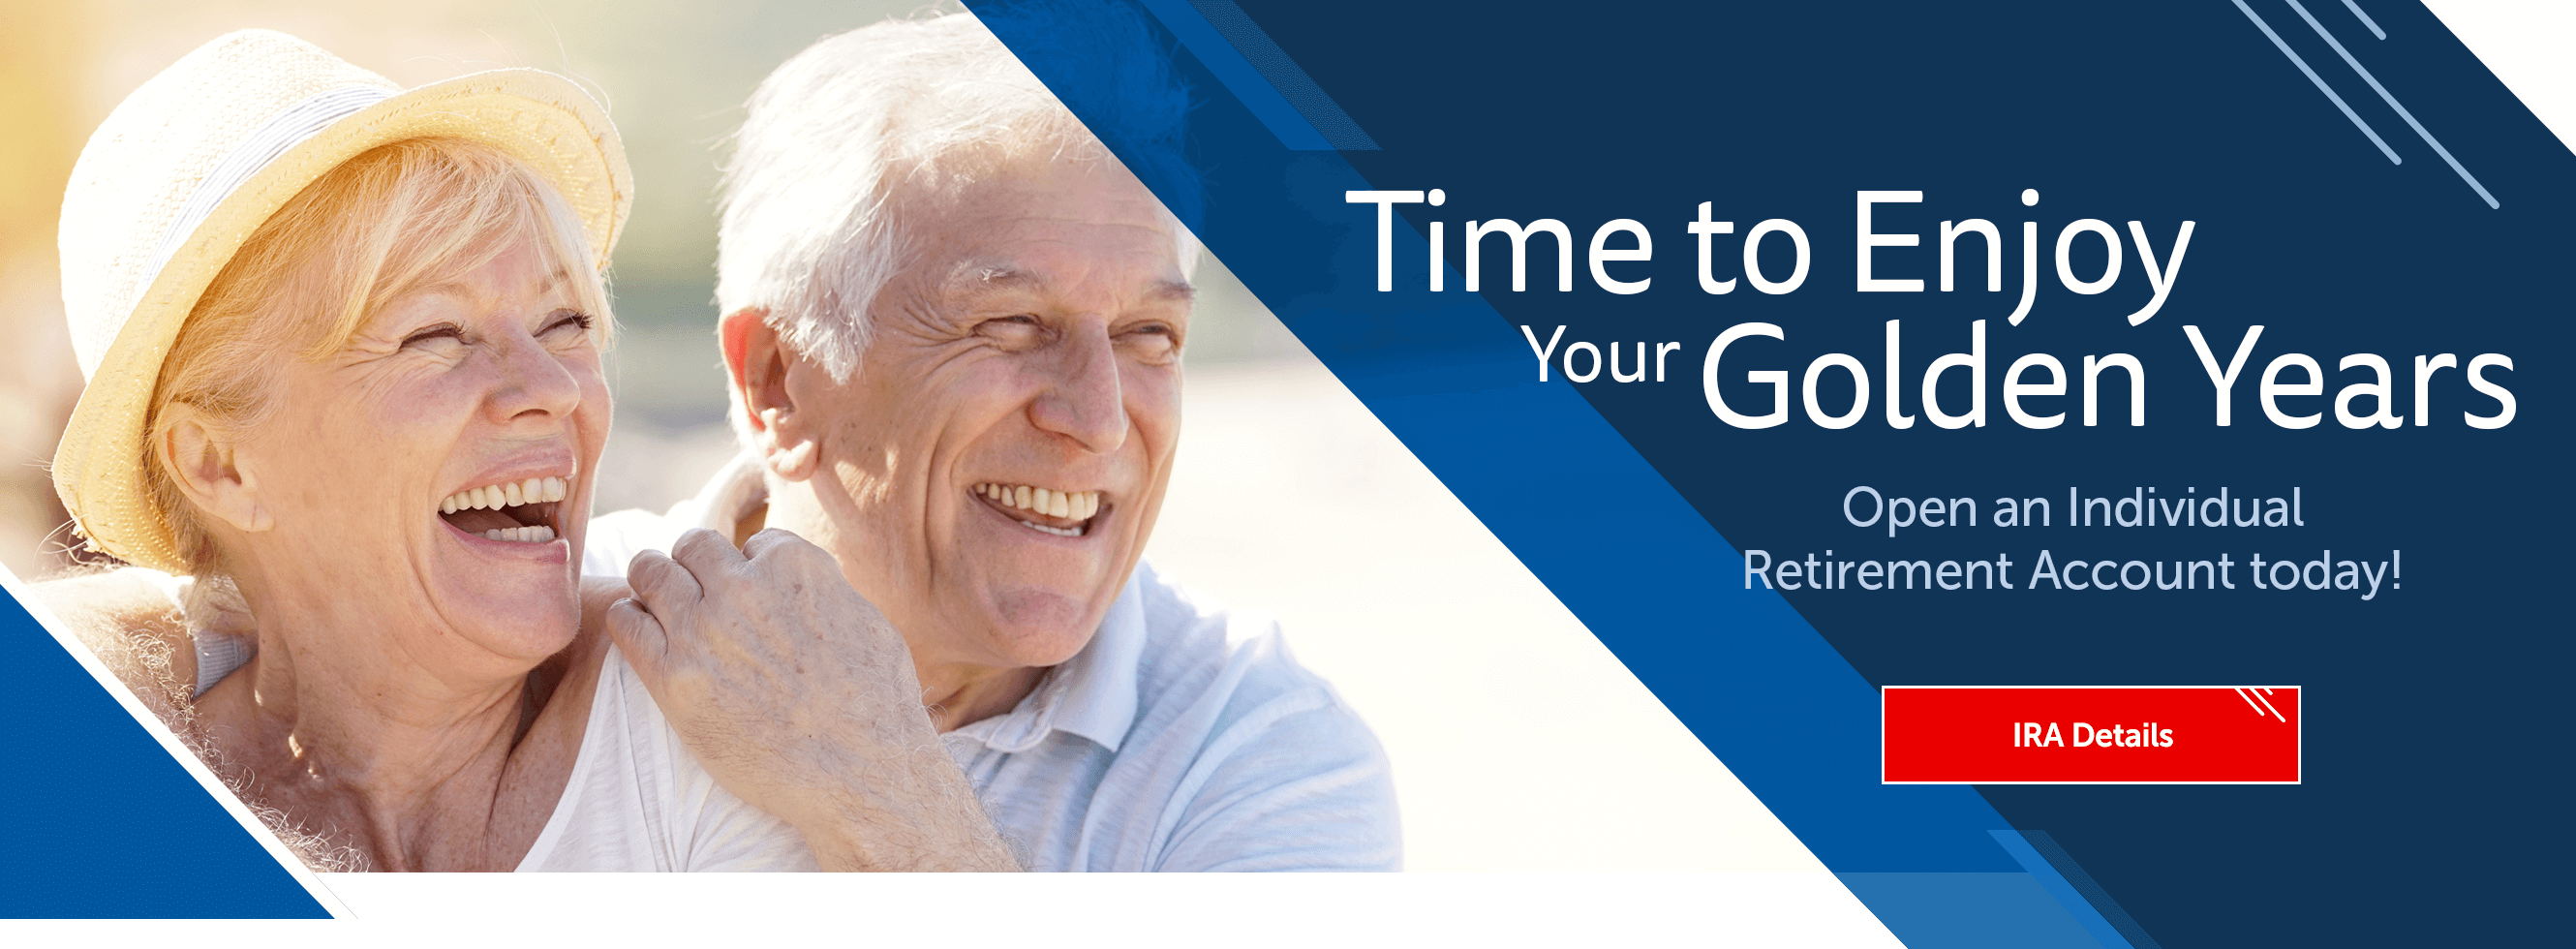 Time to Enjoy Your Golden Years. Open an Individual Retirement Account today! IRA Details